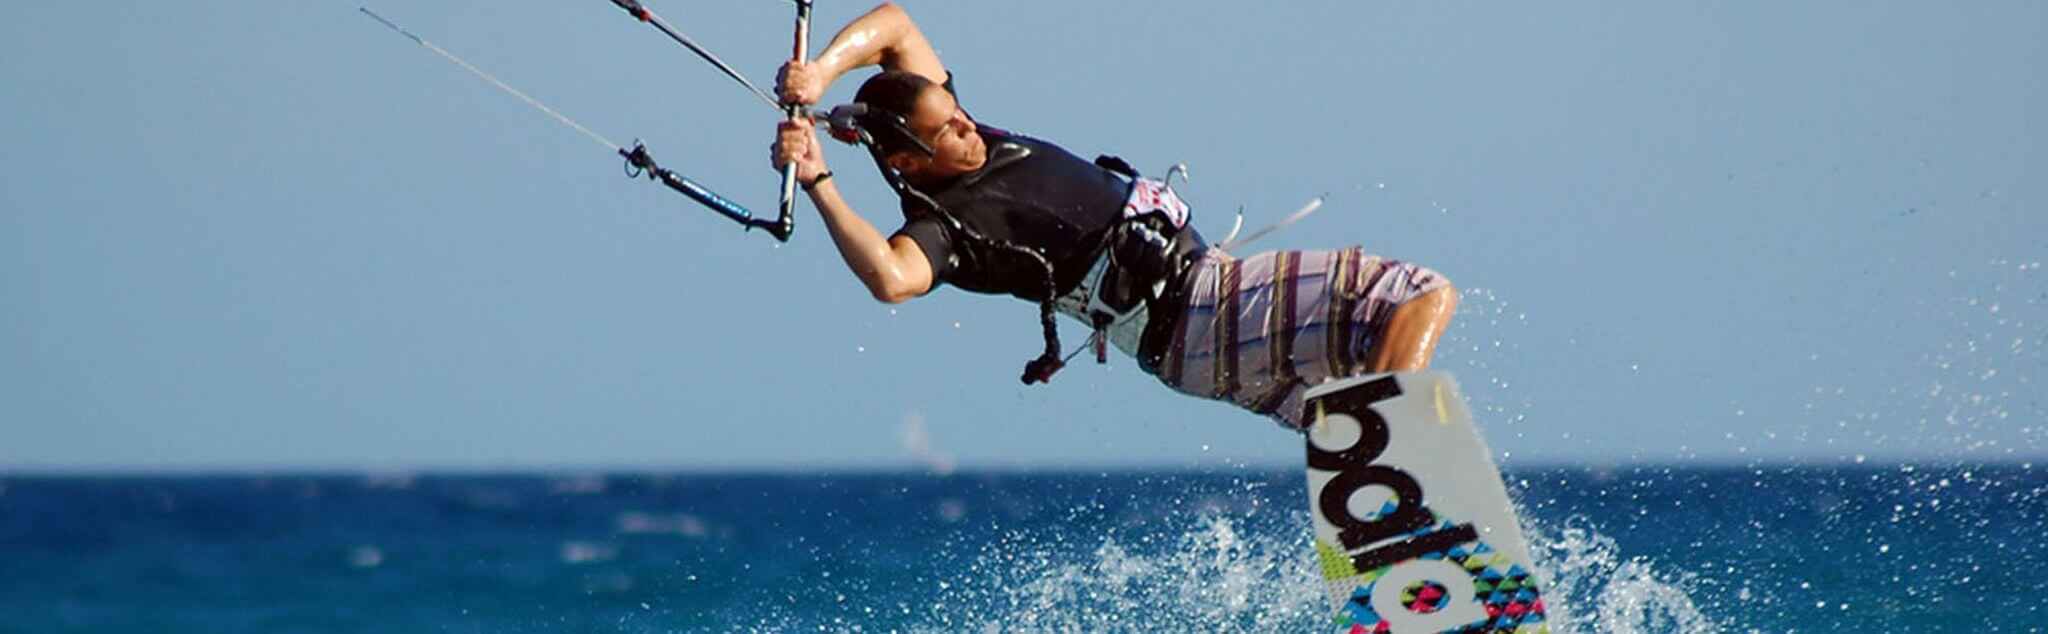 Kitesurfing in United Kingdom